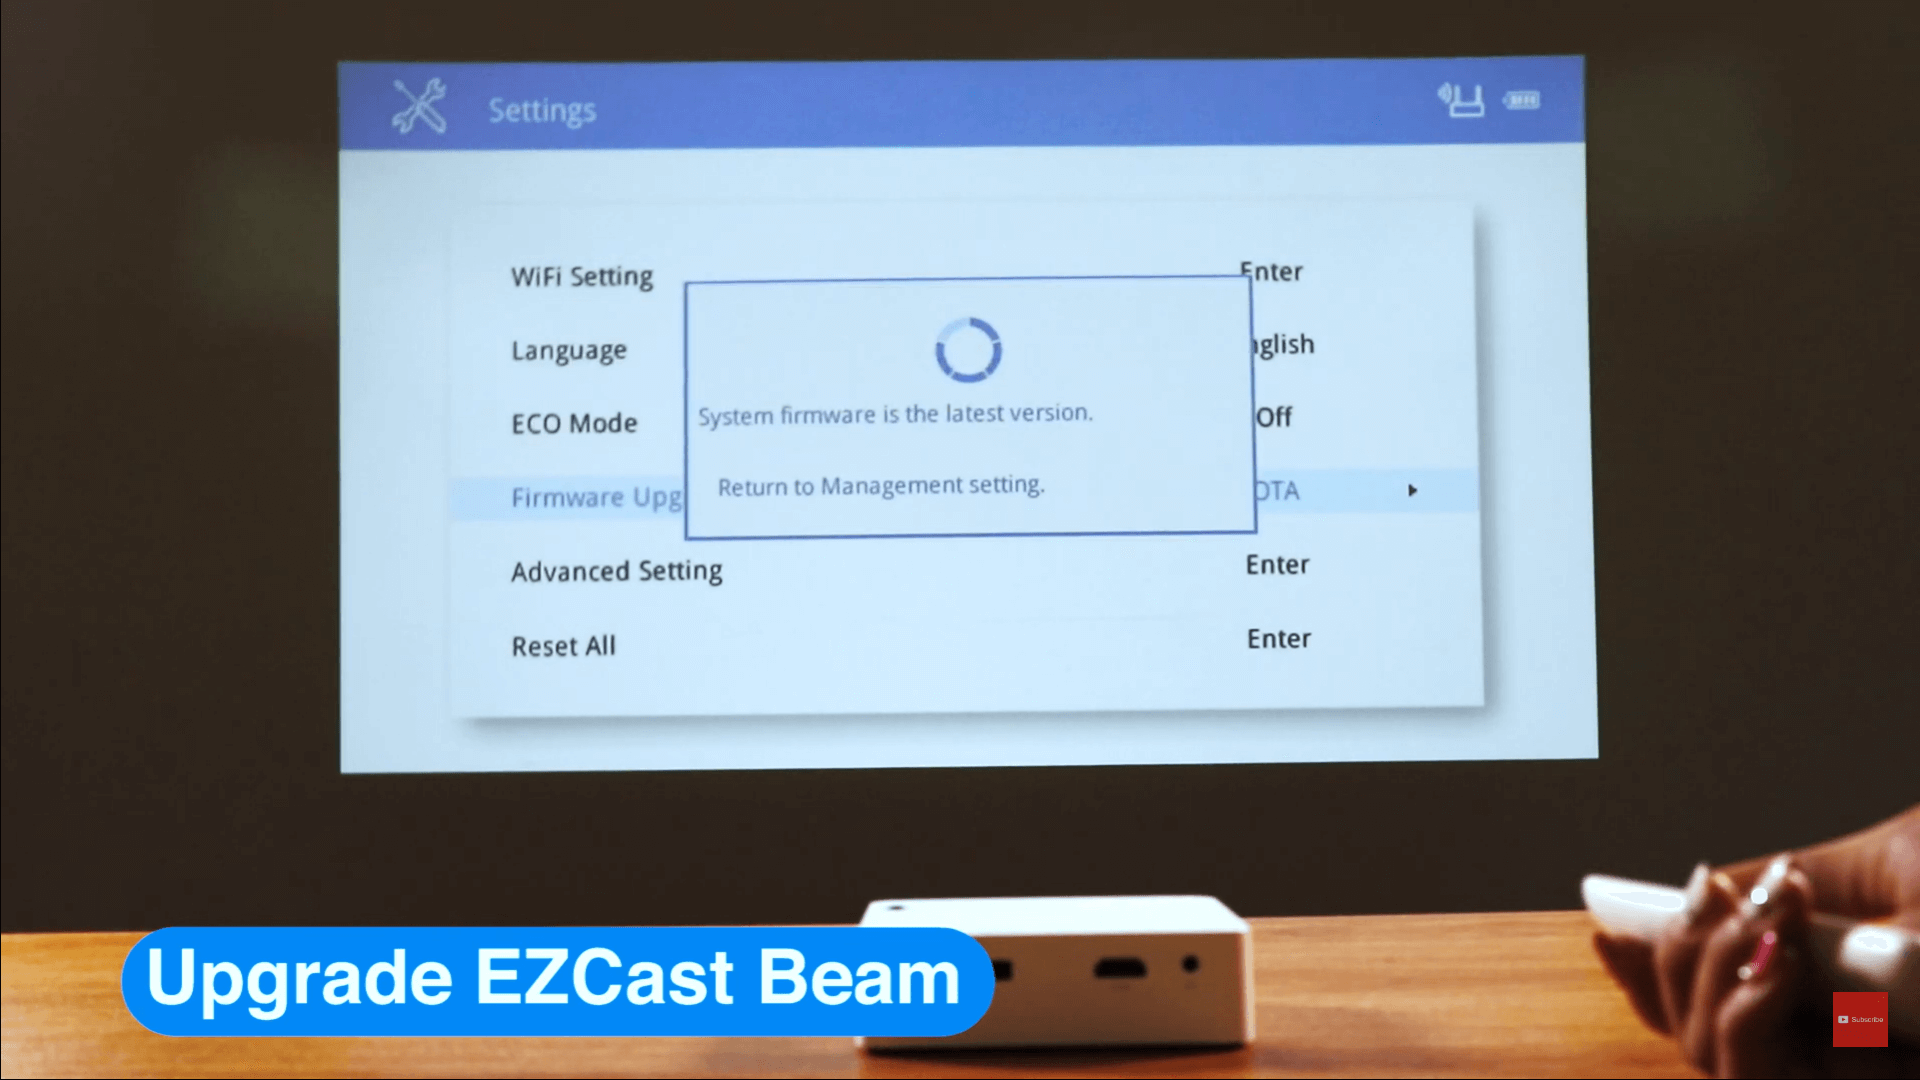 Upgrade your EZCast Beam J2 by yourself